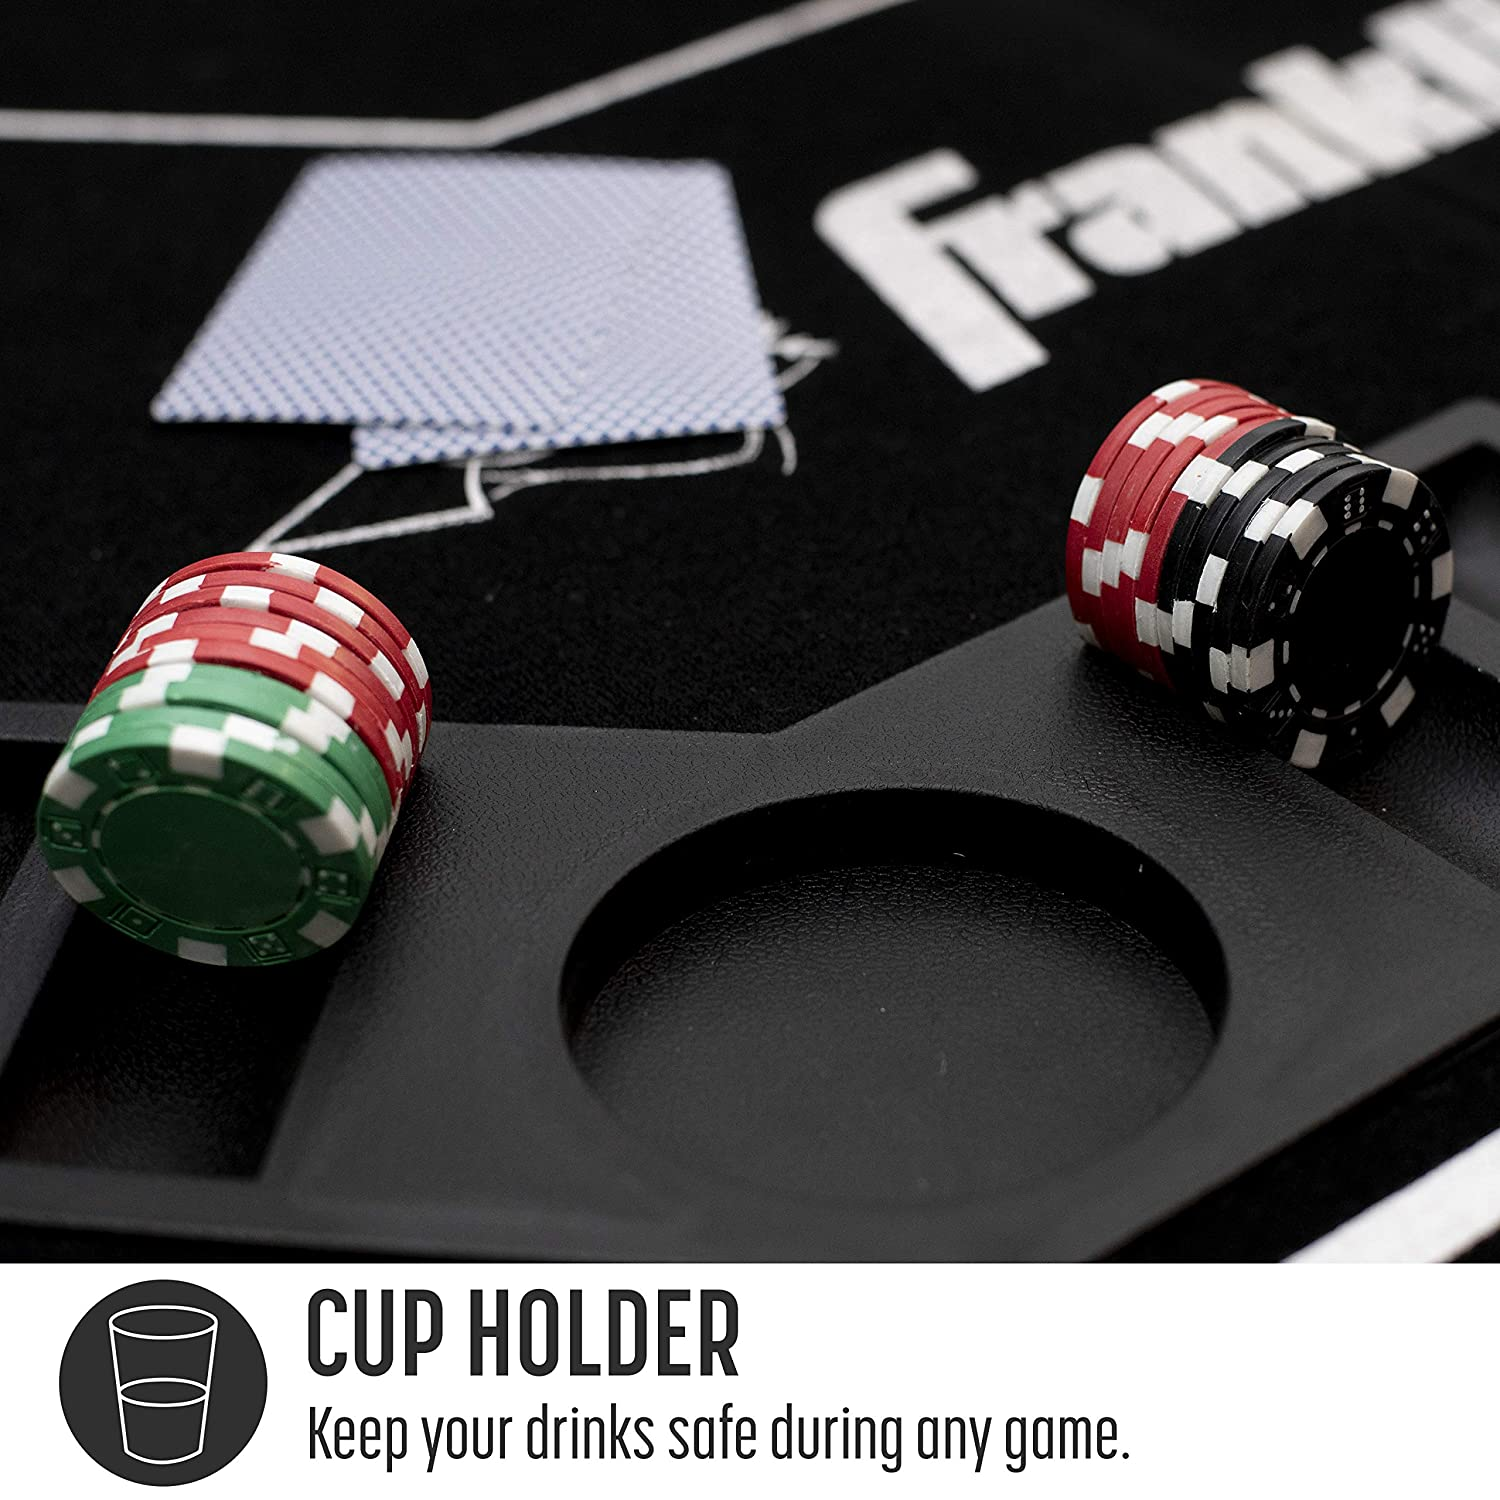 Portable 8 Person Card Game Table Top Franklin Sports Folding 10 Person Poker Table Casino Style Easy Card Slide Felt Layout with Cup Holders